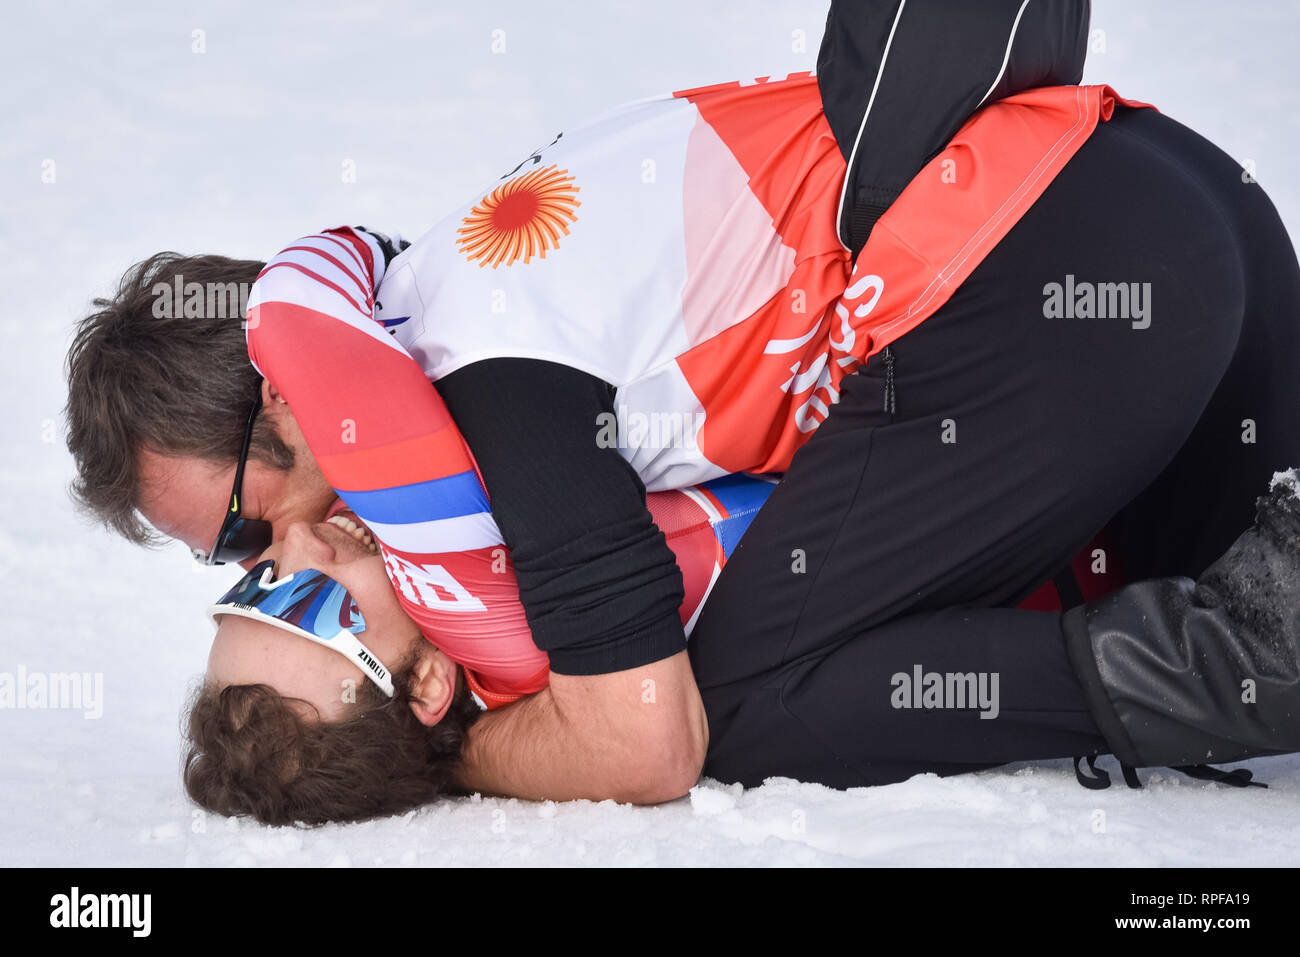 Seefeld, Austria. 21st Feb, 2019. Gleb Retivykh of Russia gets a hug from a coach at the finish line after finishing third in the men's 1.6-k freestyle sprint race at the 2019 world nordic ski championships. Credit: John Lazenby/Alamy Live News - Stock Image